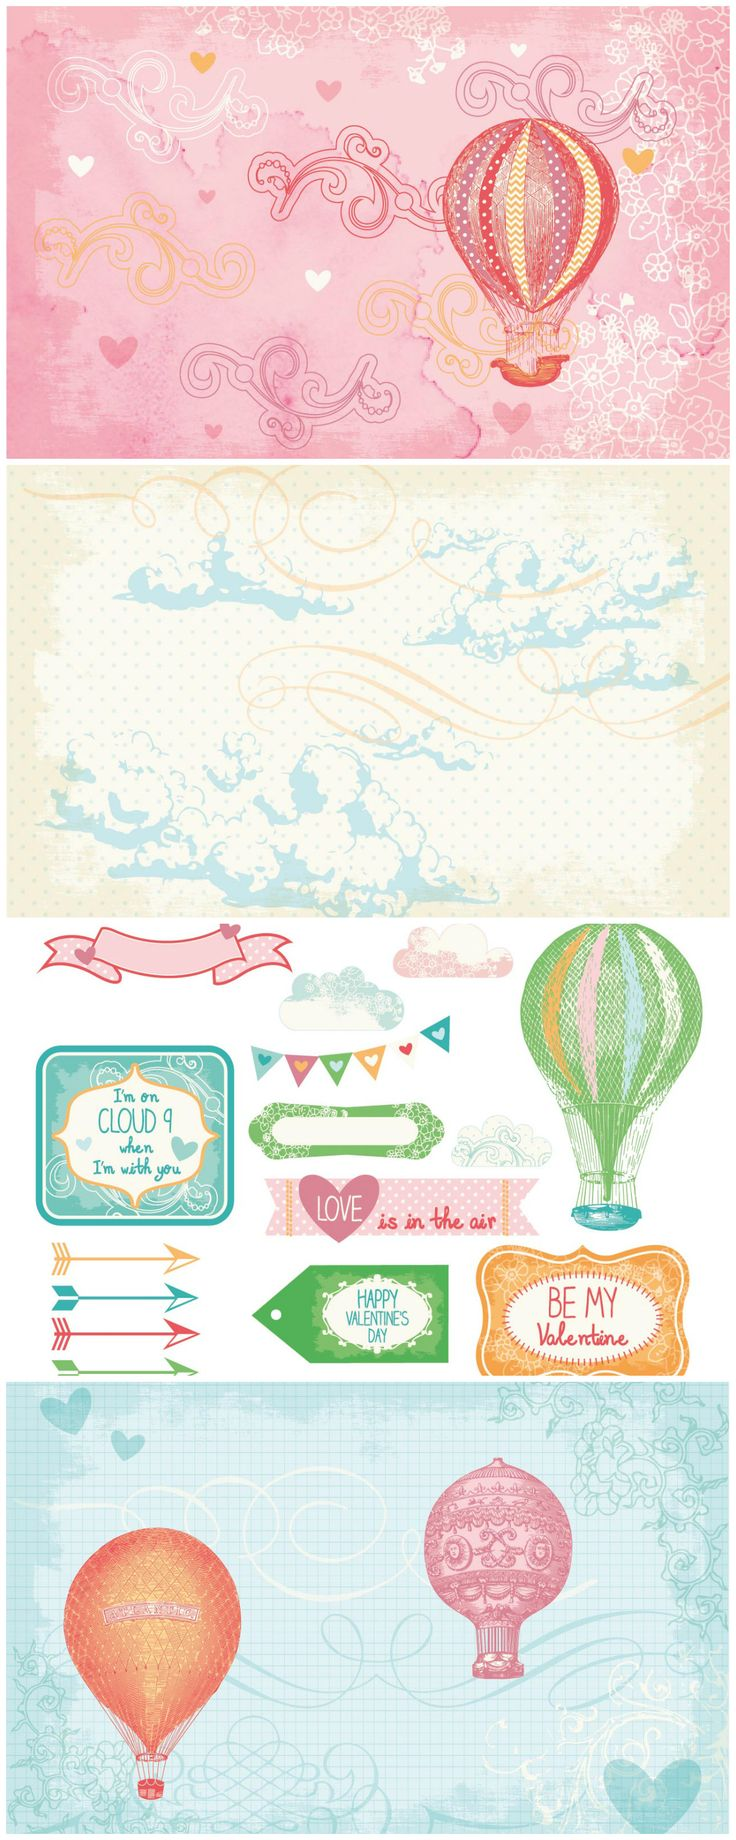 Hot air balloons free printable papers for Valentine's cards - Papercraft Inspirations magazine